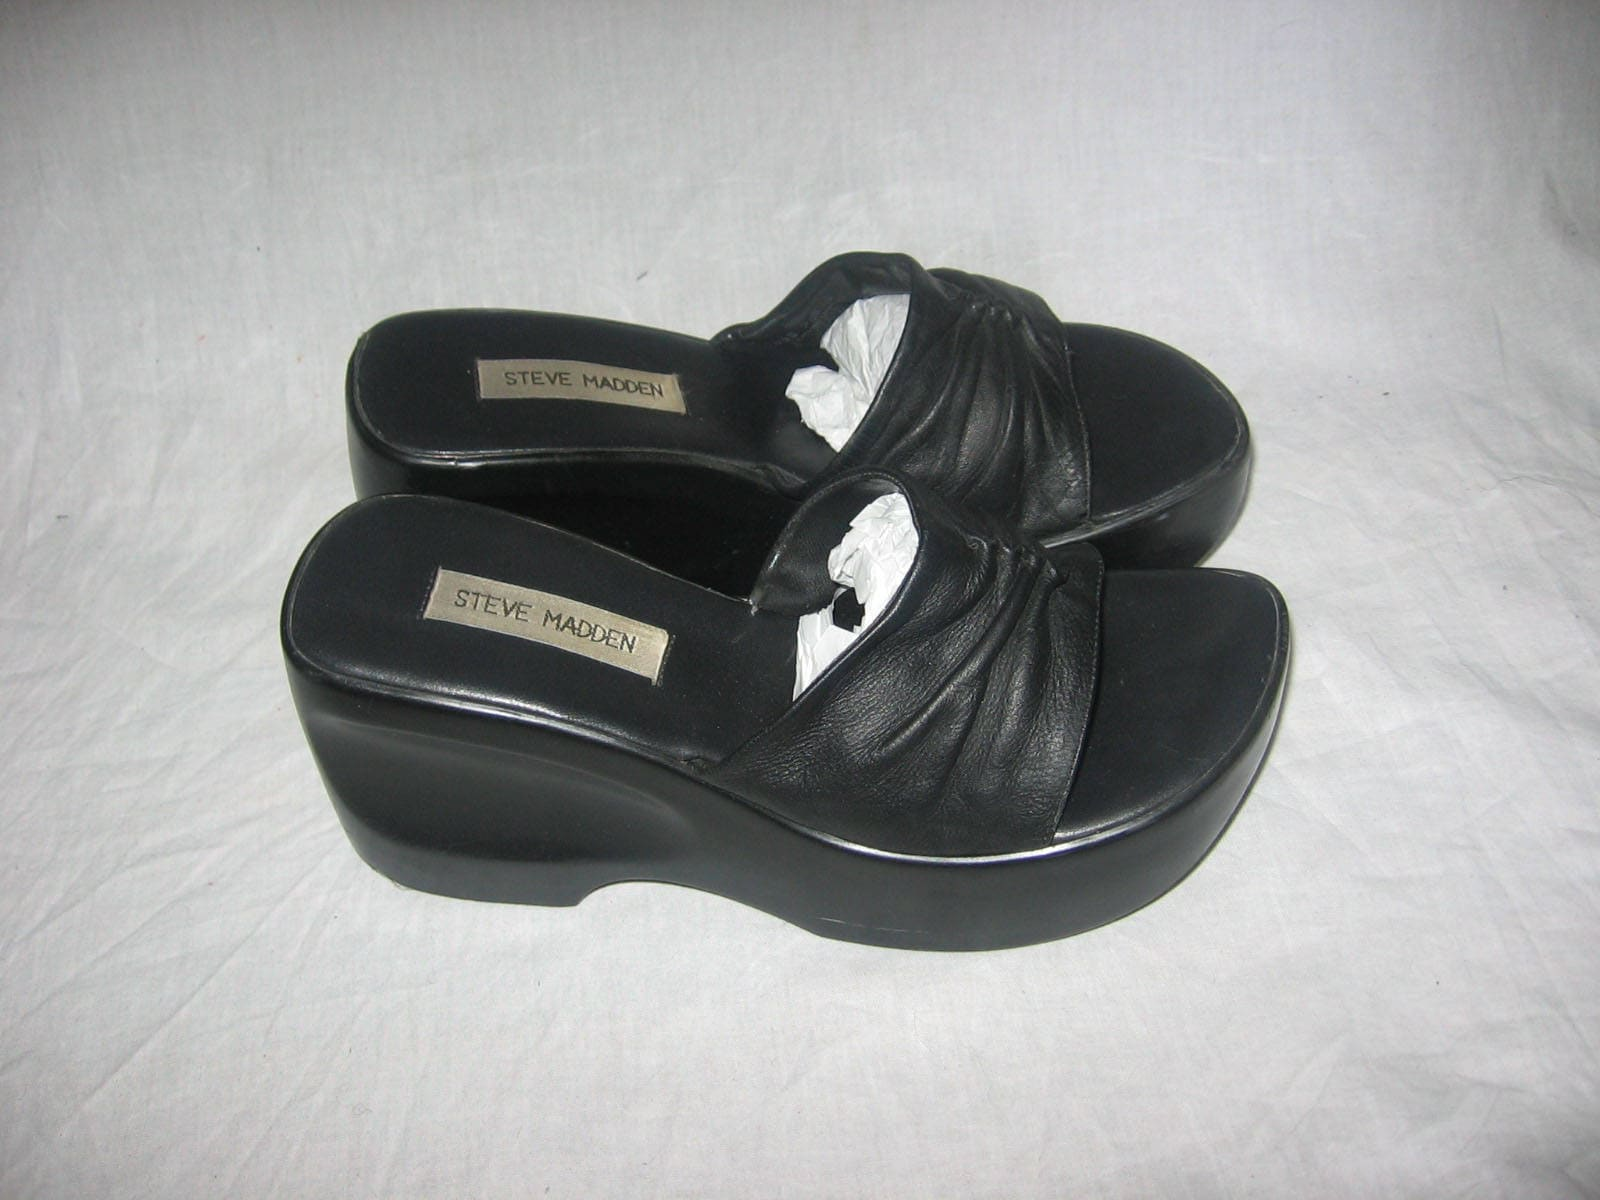 7b752bb4918 Vintage Steve Madden Black Cinched Gather Leather Carved Chunky Platform  Wedge High Heel Slide Mule Sandals Grunge Club Kid Shoes Size 8 1/2